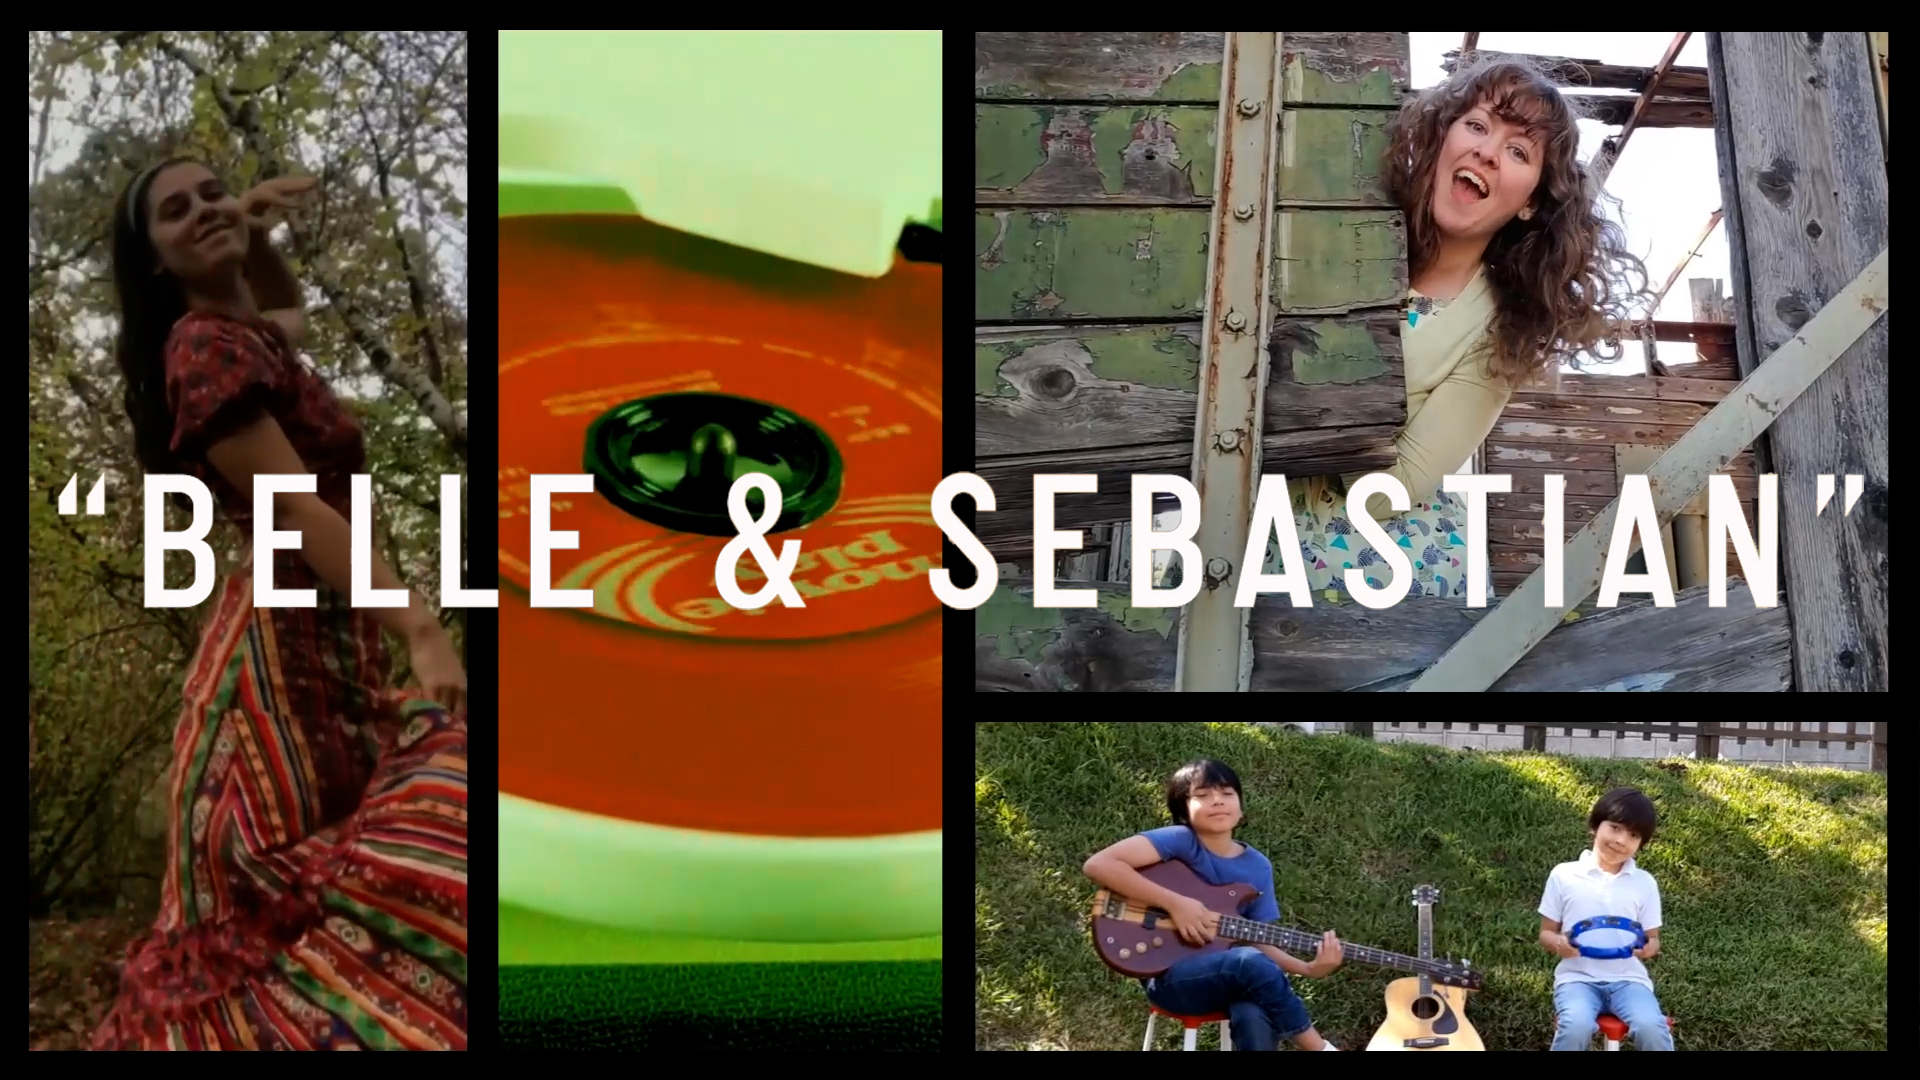 BELLE AND SEBASTIAN release fan sourced lip-sync video for the song 'Belle and Sebastian' 1